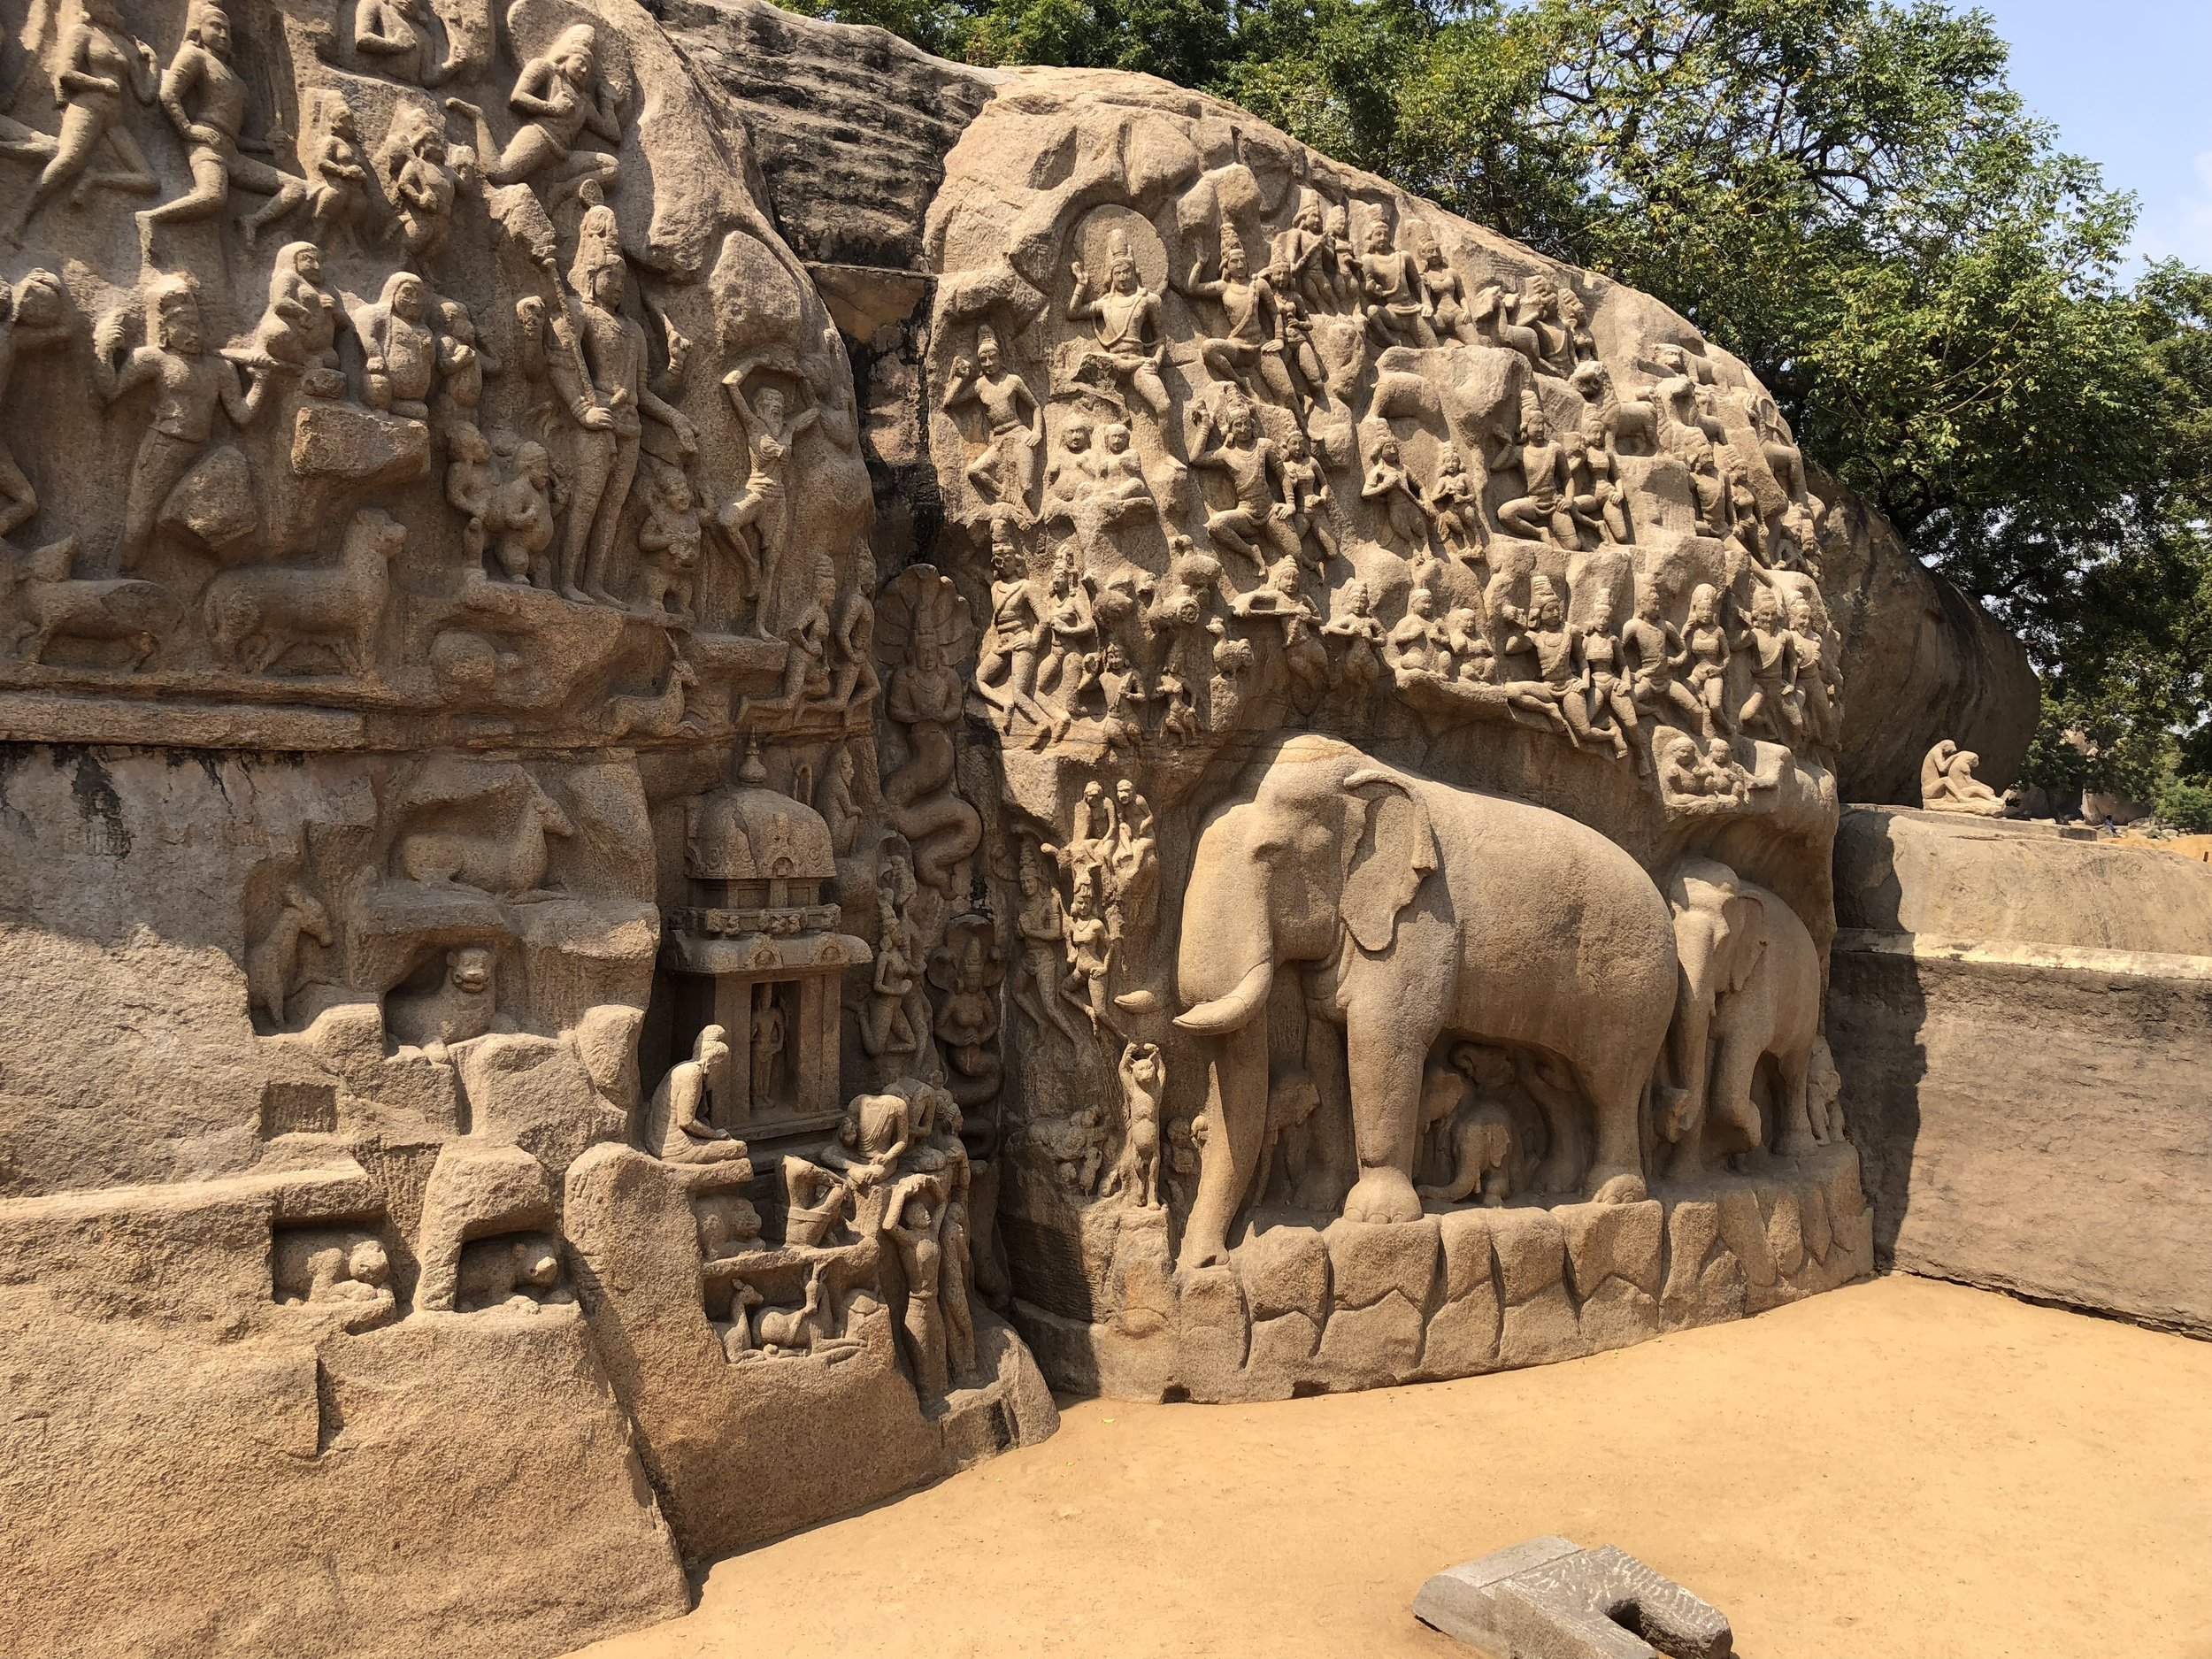 """Wall of stories: A section of """"The Descent of the Ganges"""" rock sculpture near Chennai, India."""